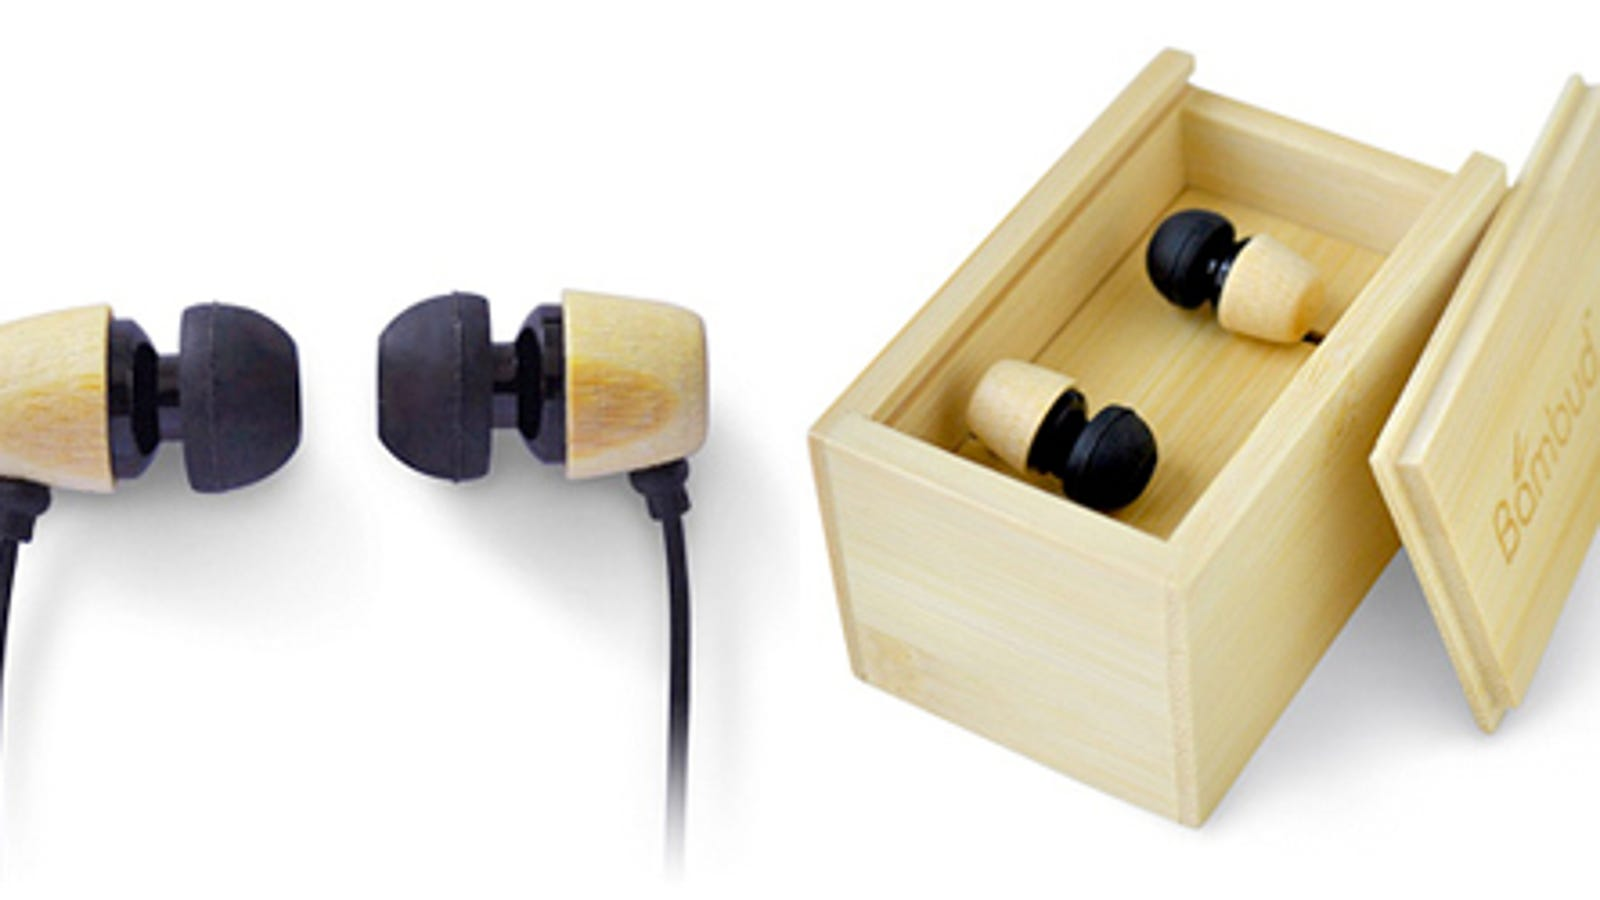 bamboo headphone stand - Bamboo Earbuds Are an Exercise in Simple Technology